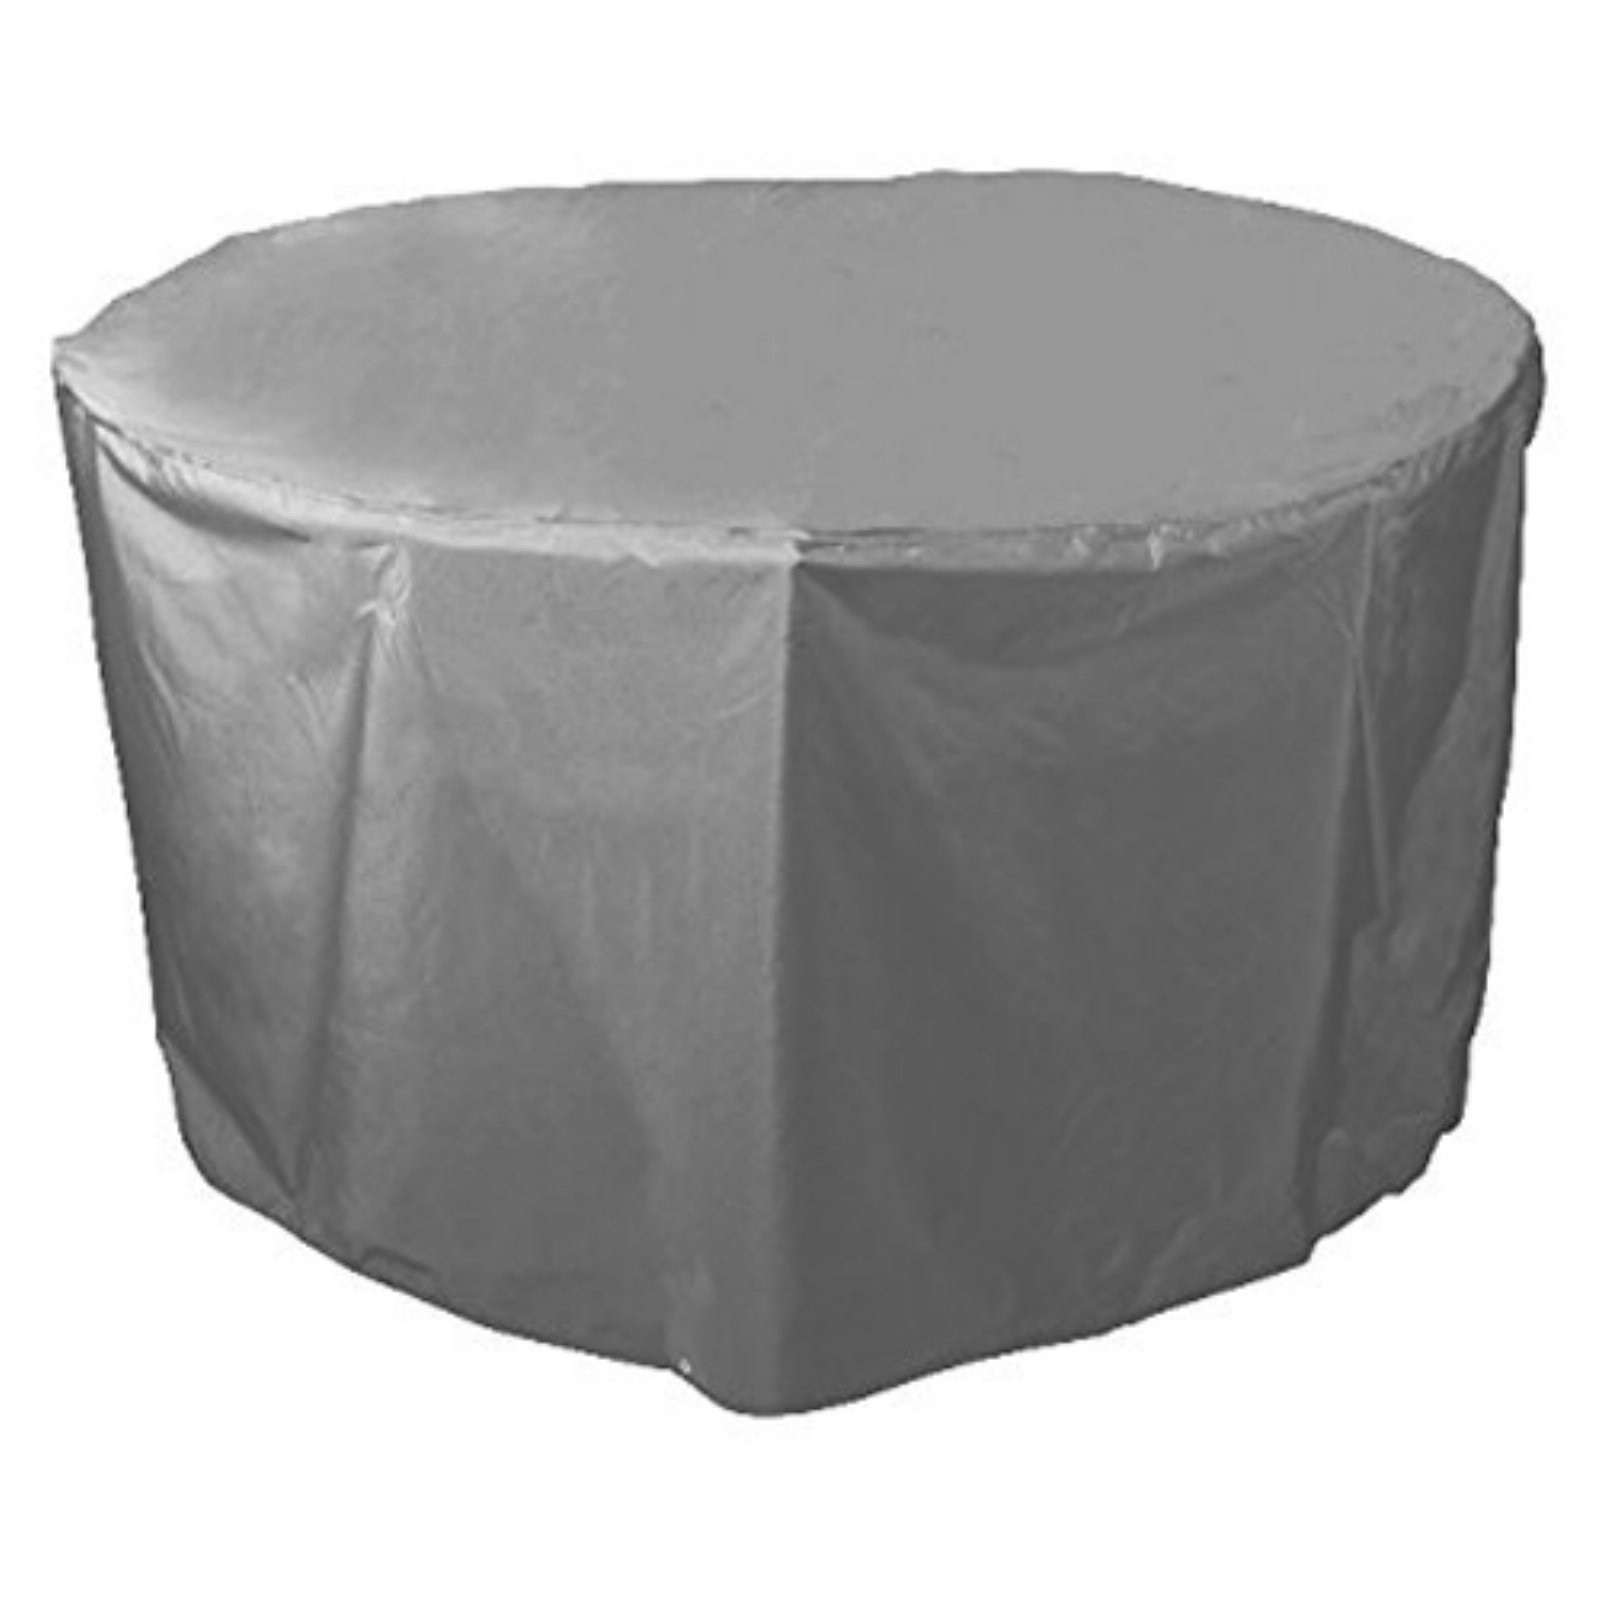 Bosmere Waterproof Grey Outdoor 40 in. Round Table Cover - 40W x 28H in.